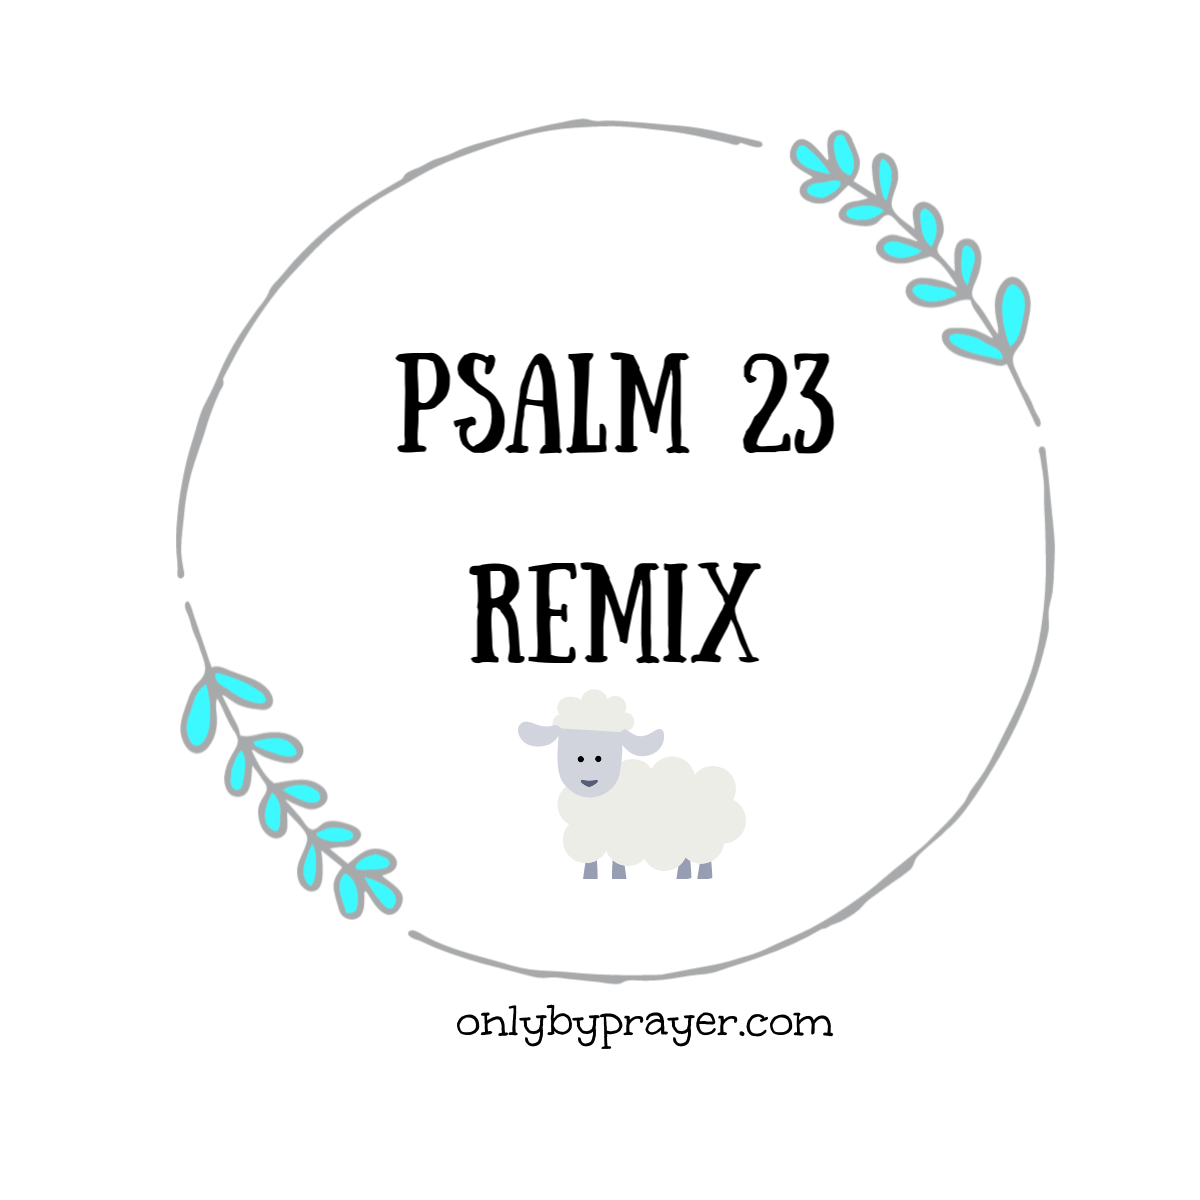 Psalm 23 Remix